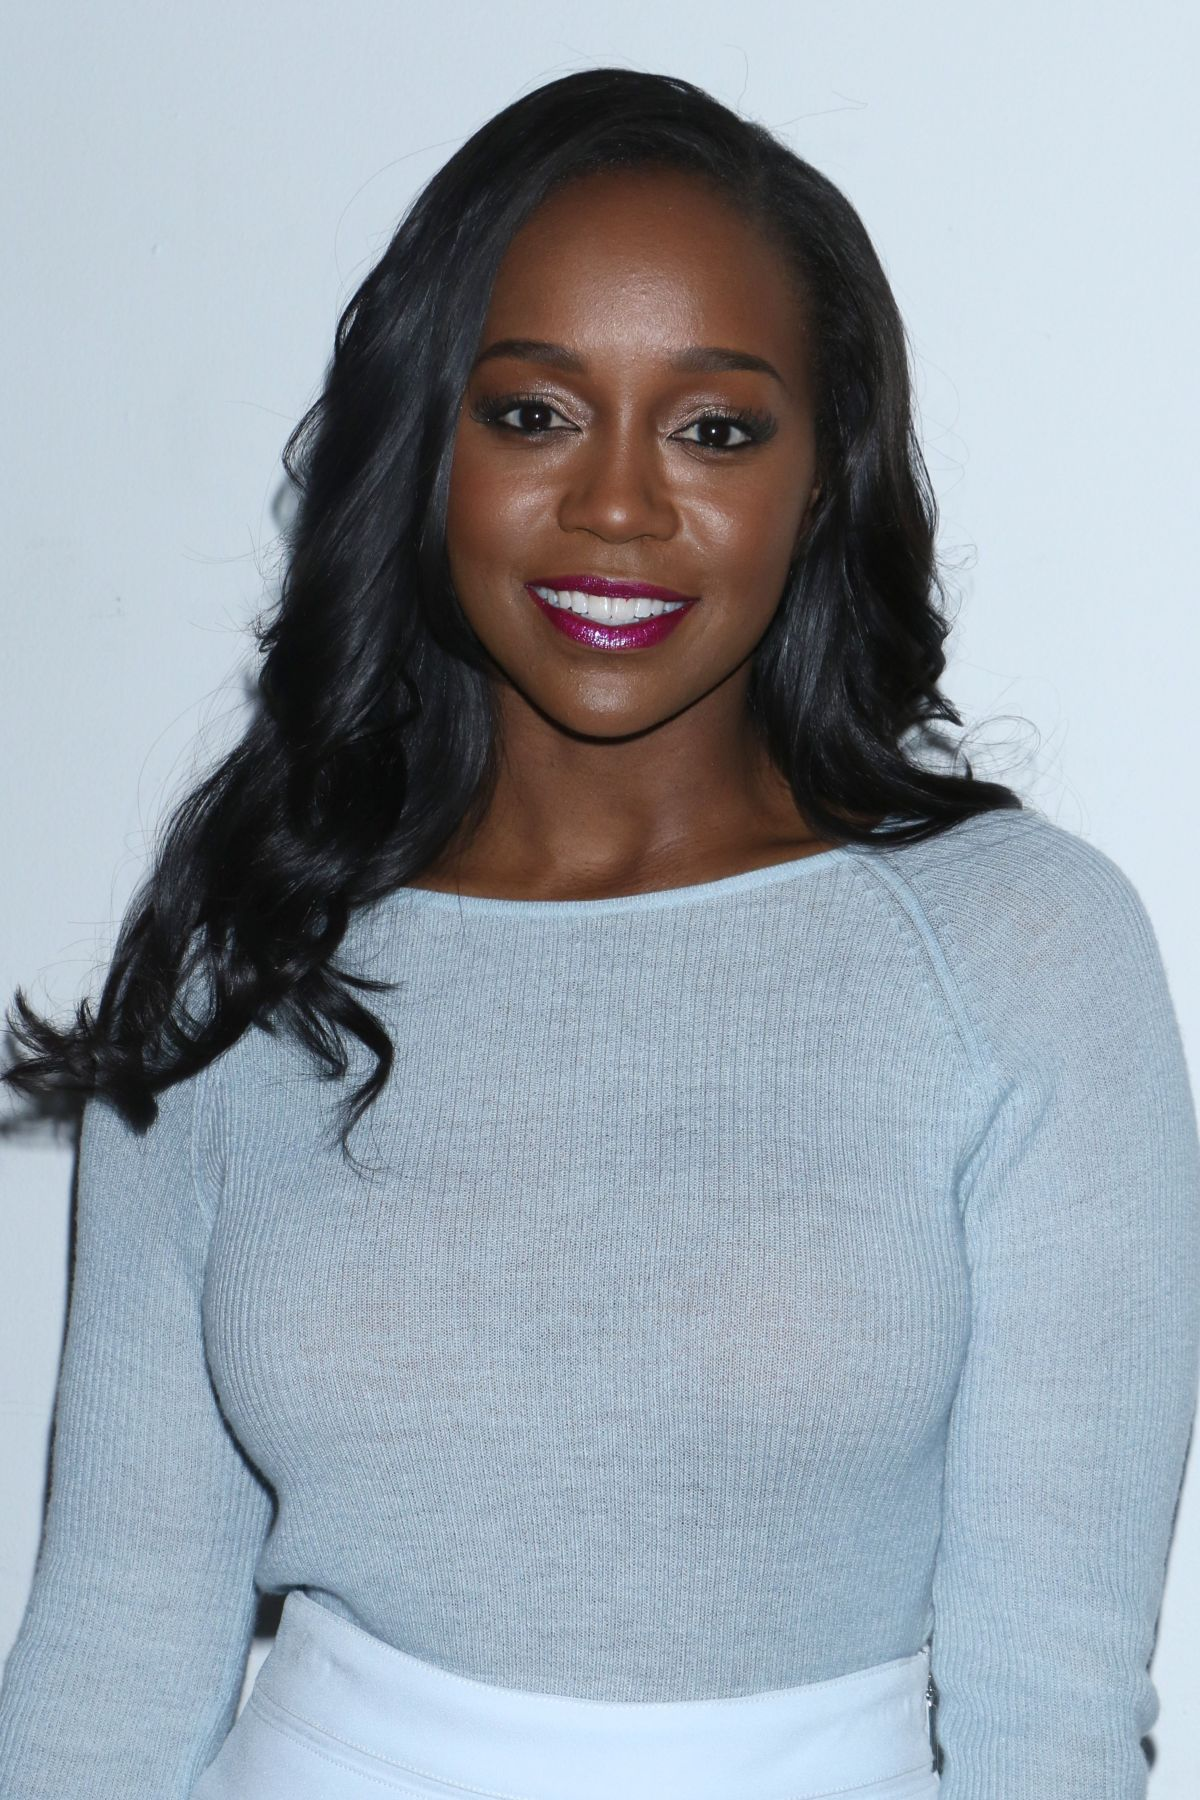 AJA NAOMI KING at Prabal Gurung Fashion Show at New York Fashion Week 02/12/2017